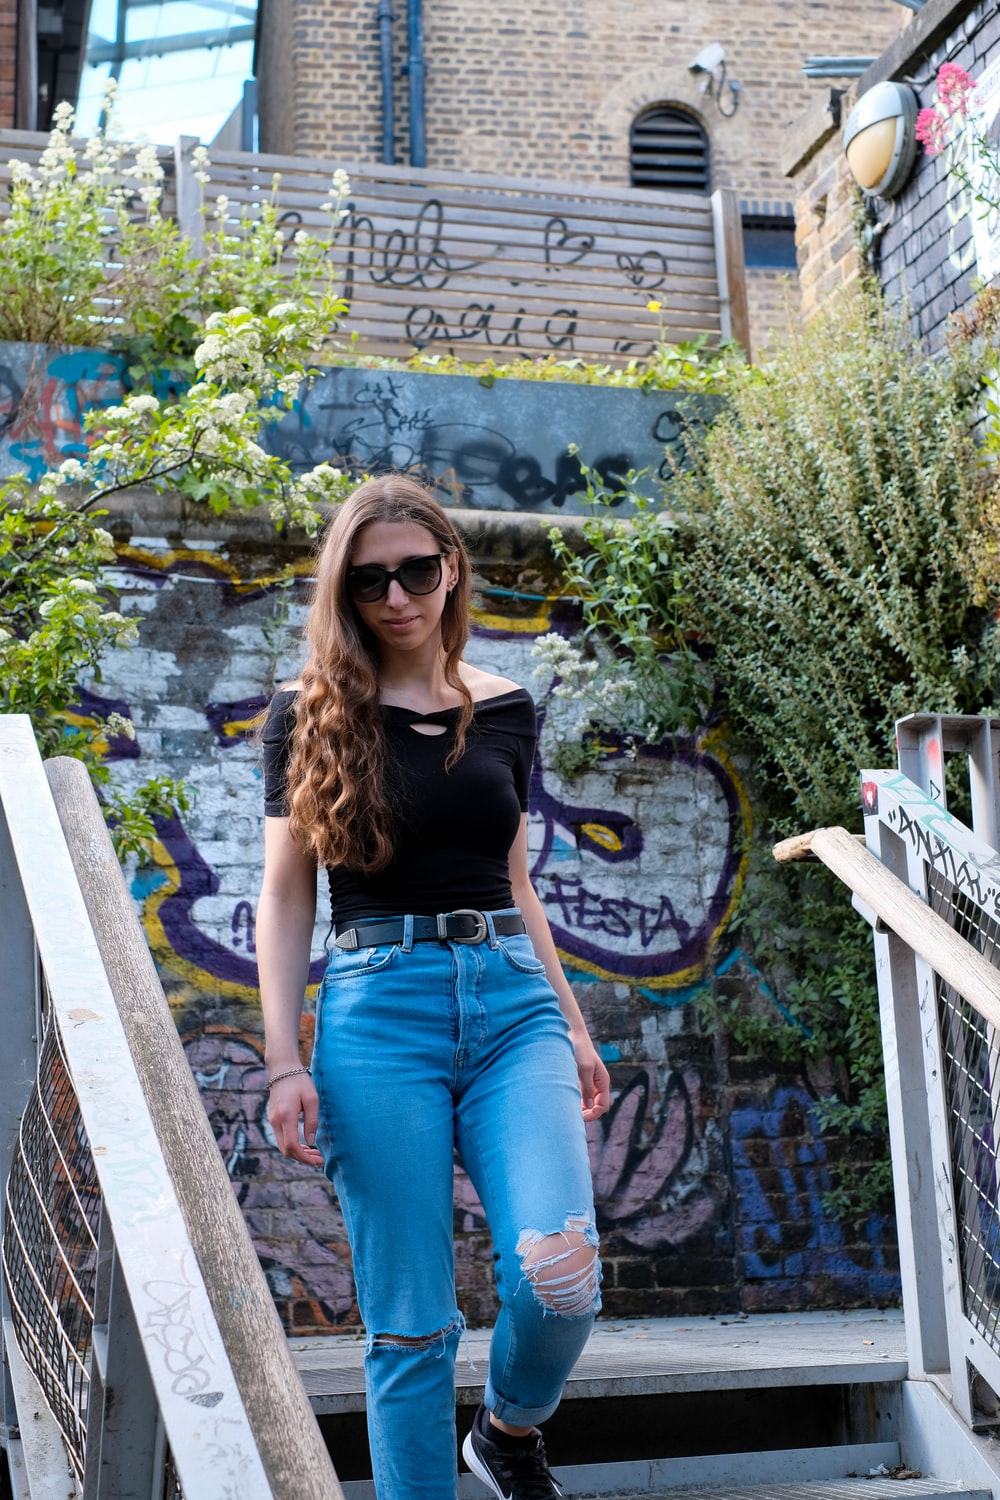 woman in black tank top and blue denim jeans sitting on brown wooden bench during daytime